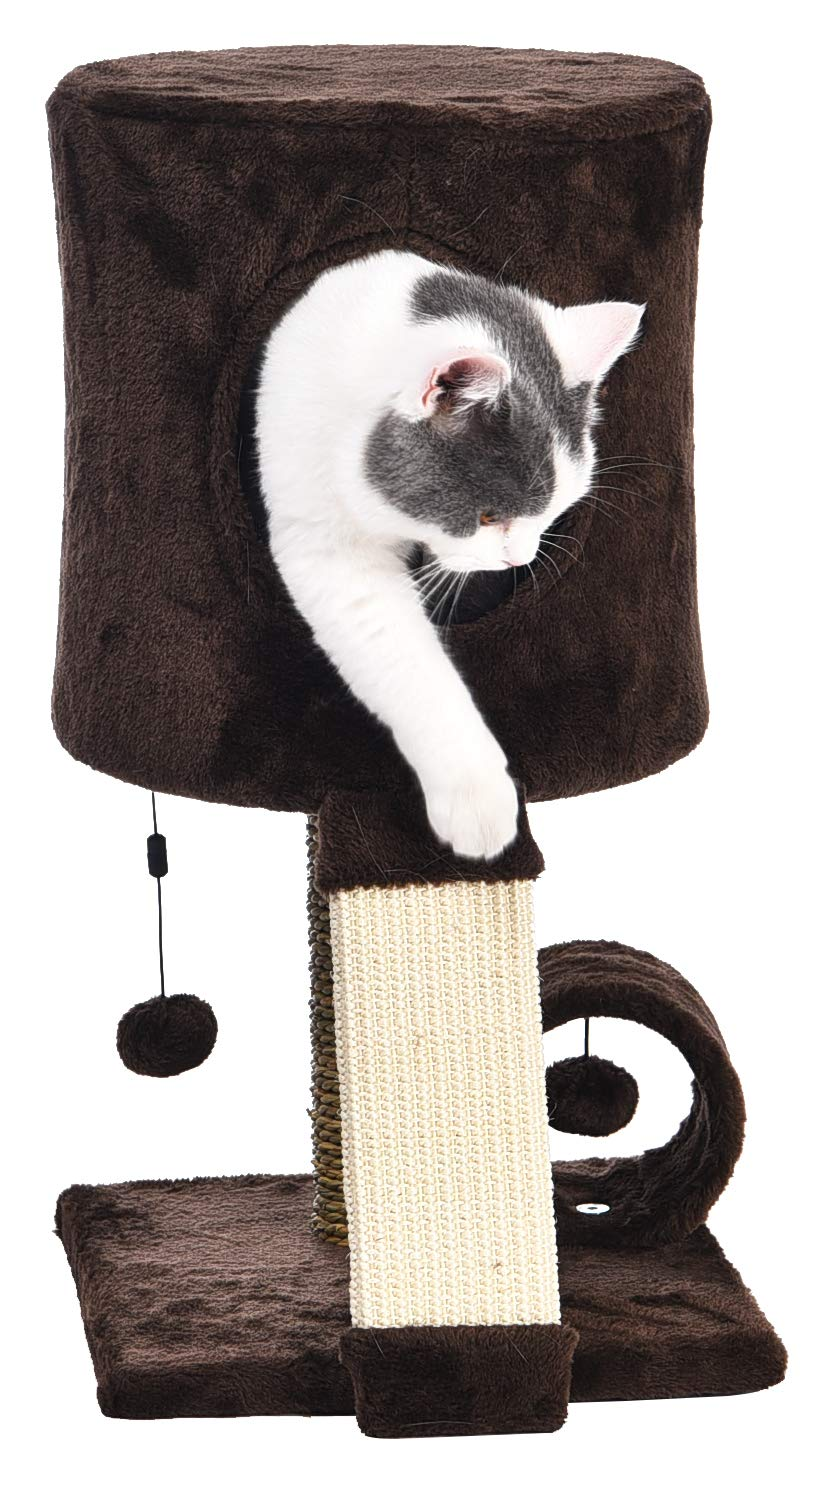 AmazonBasics Cat Tree Tower With Perch Condo - 12 x 12 x 20 Inches, Dark Brown